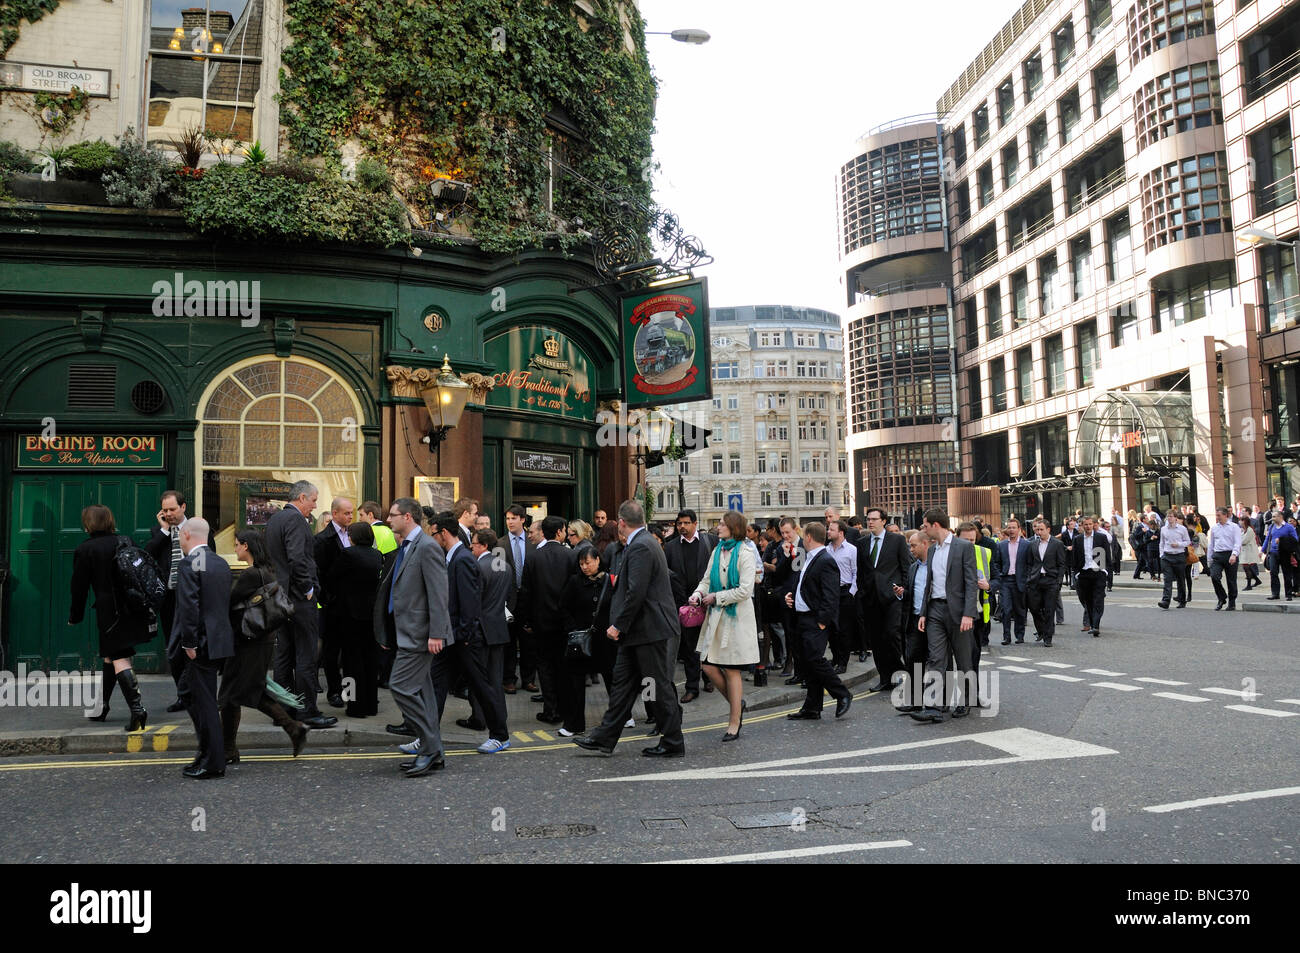 People evacuated from a building near Liverpool Street Station London England UK Stock Photo